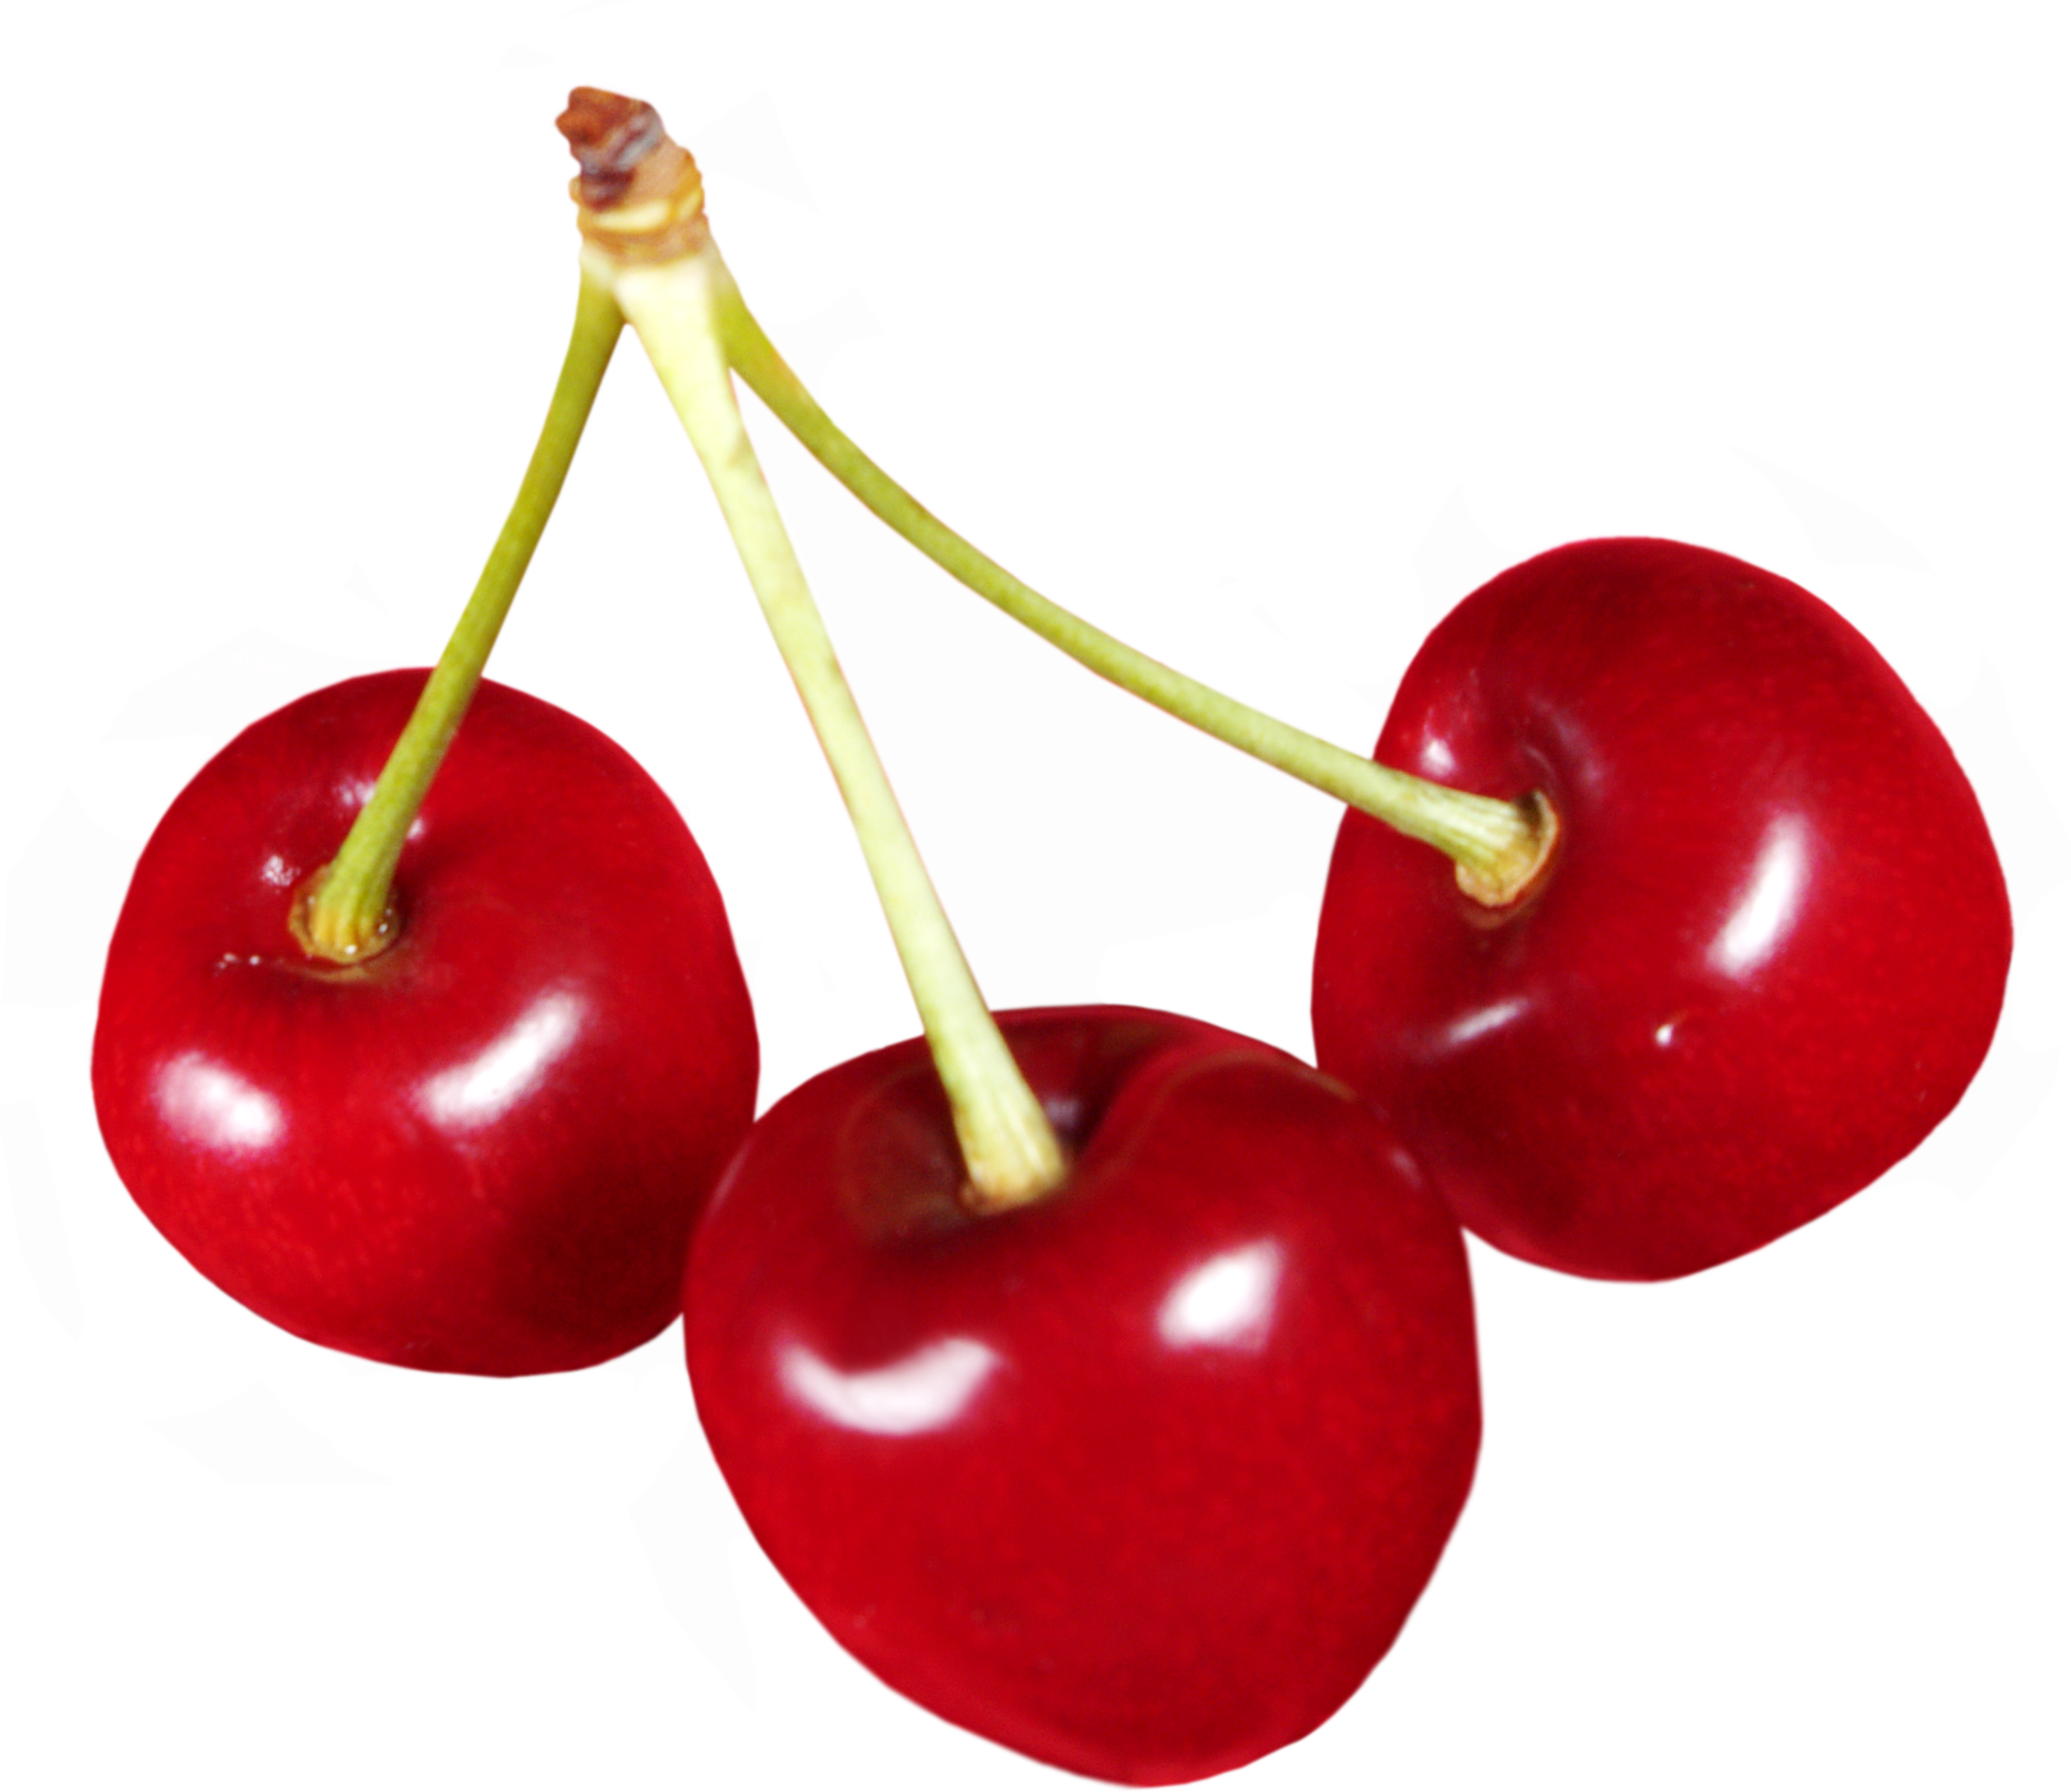 Cherry png. Images free download cherries